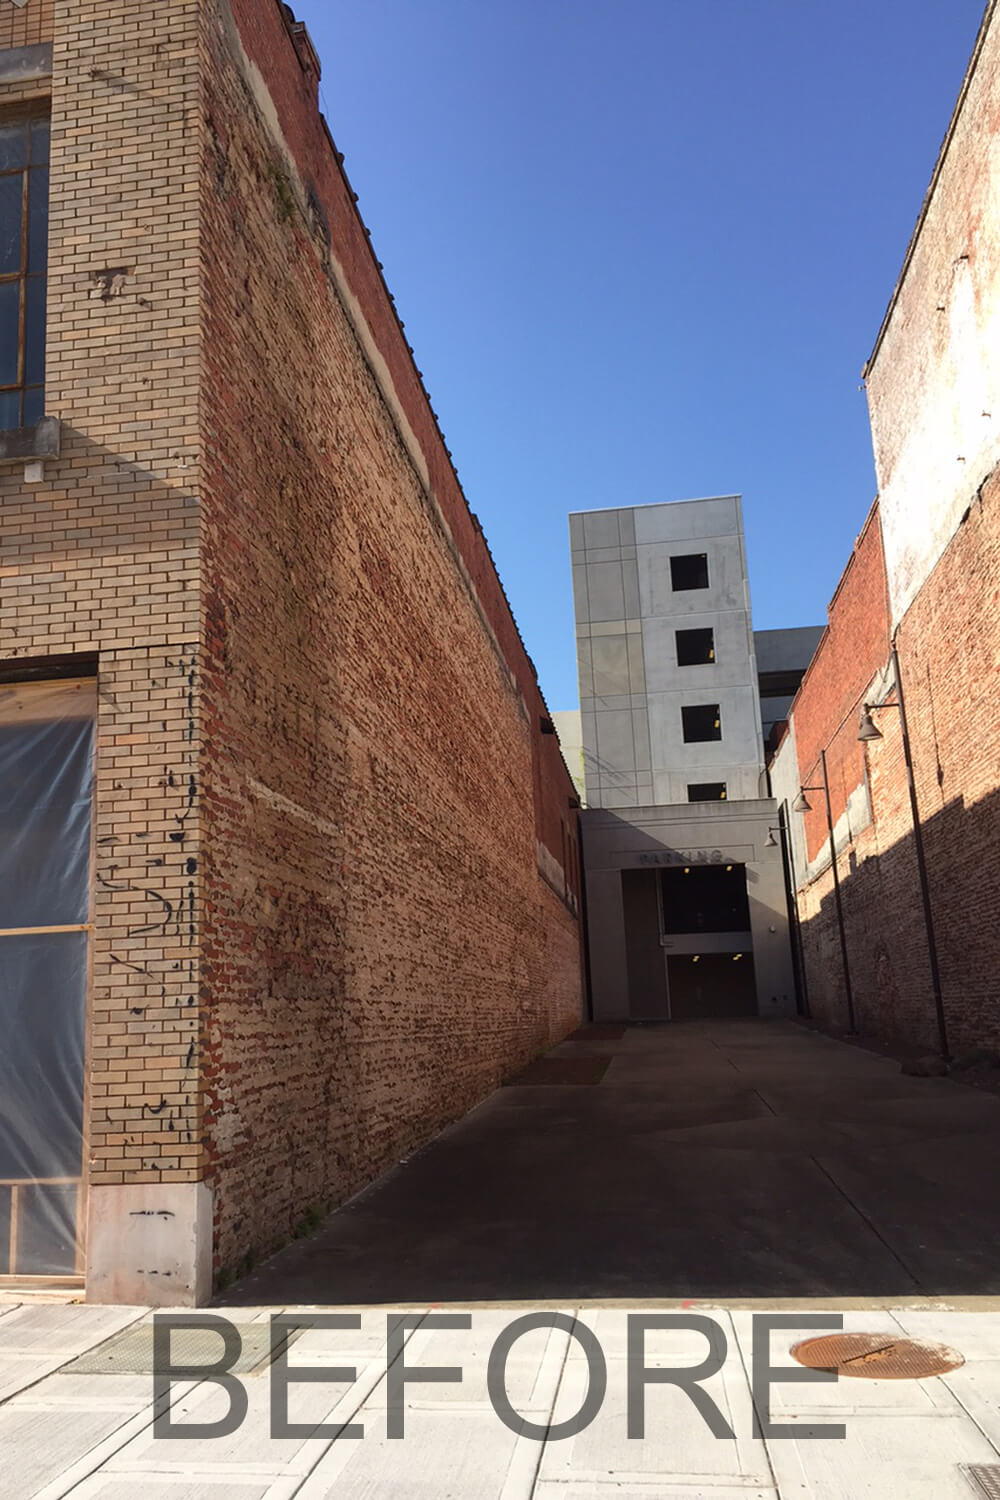 Dexter Alley Park Designed by Foshee Architecture - View Before Renovations